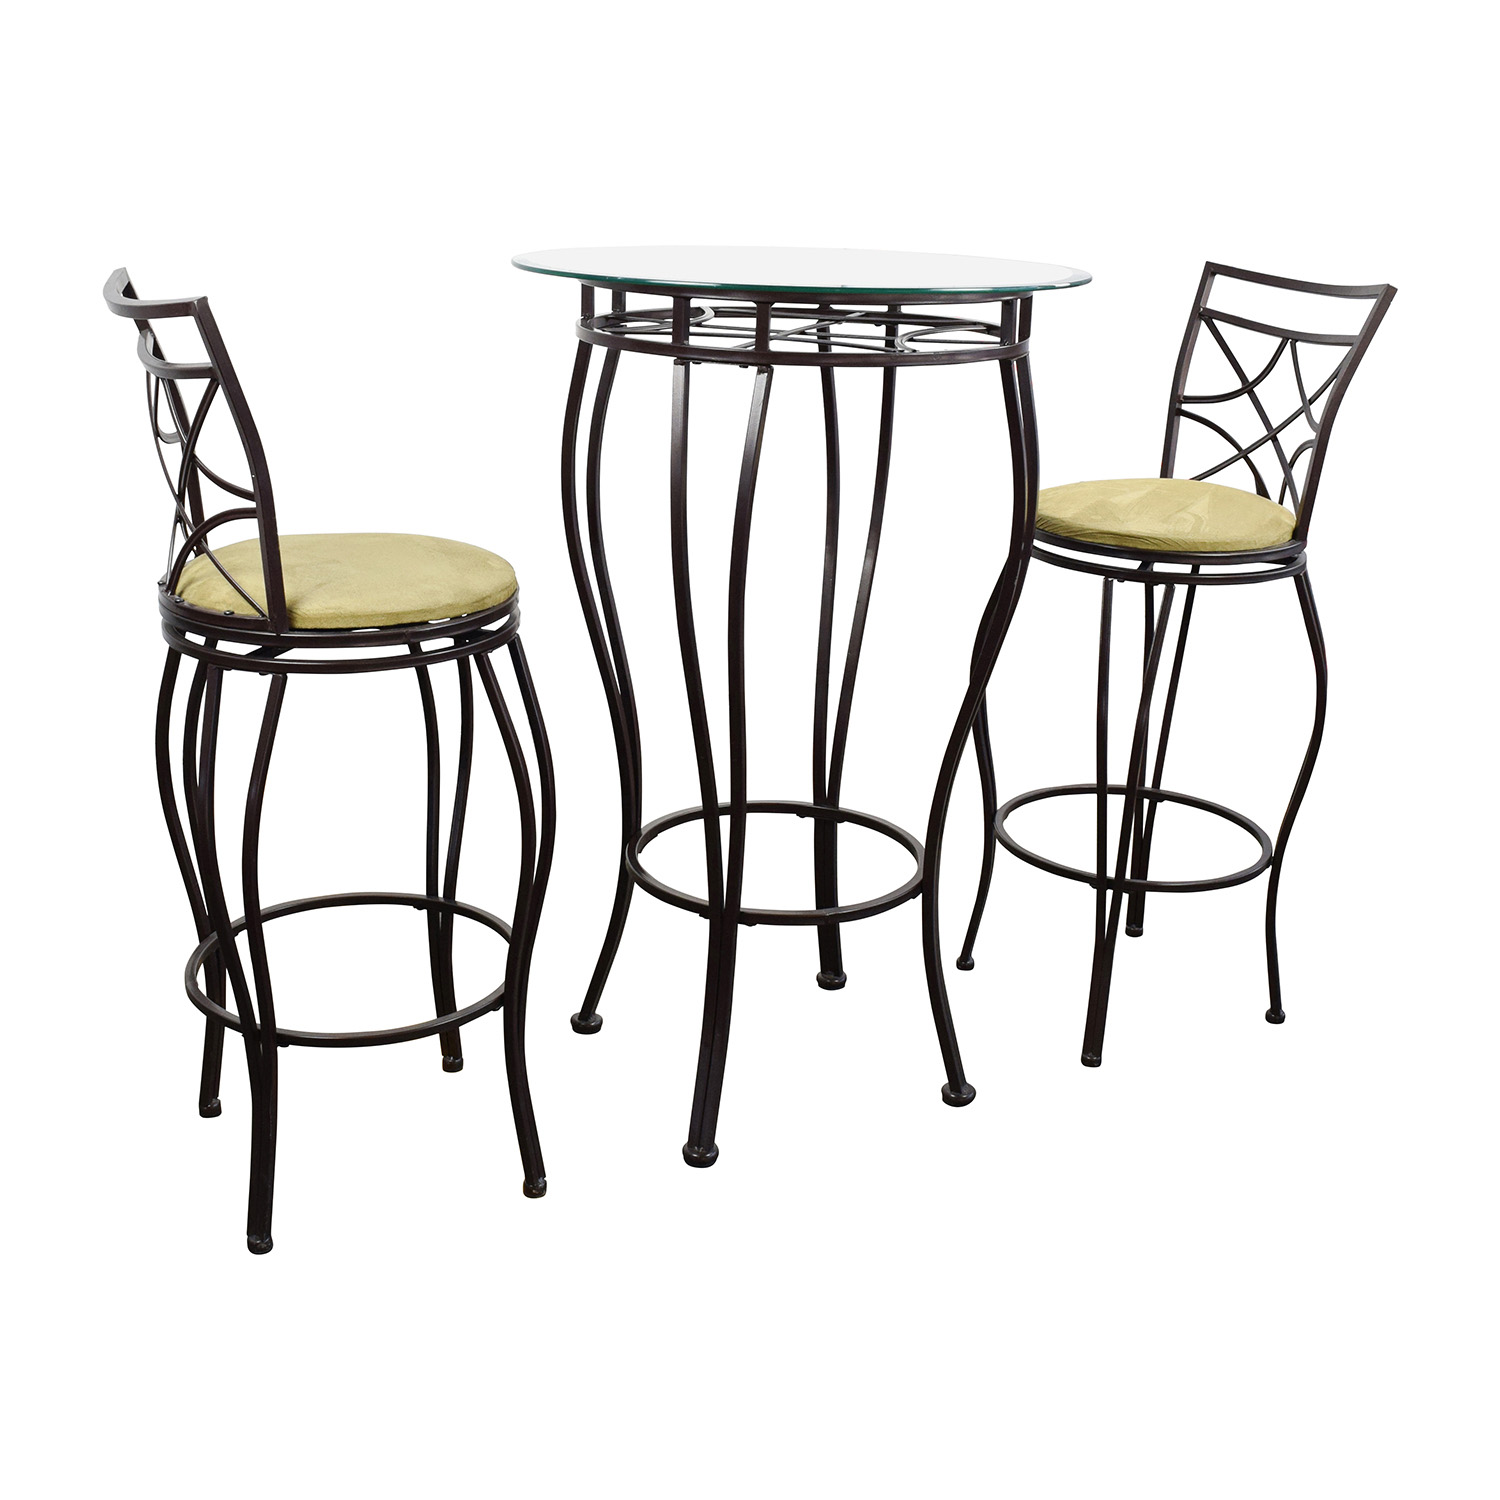 89 off iron bistro table and two chairs tables. Black Bedroom Furniture Sets. Home Design Ideas